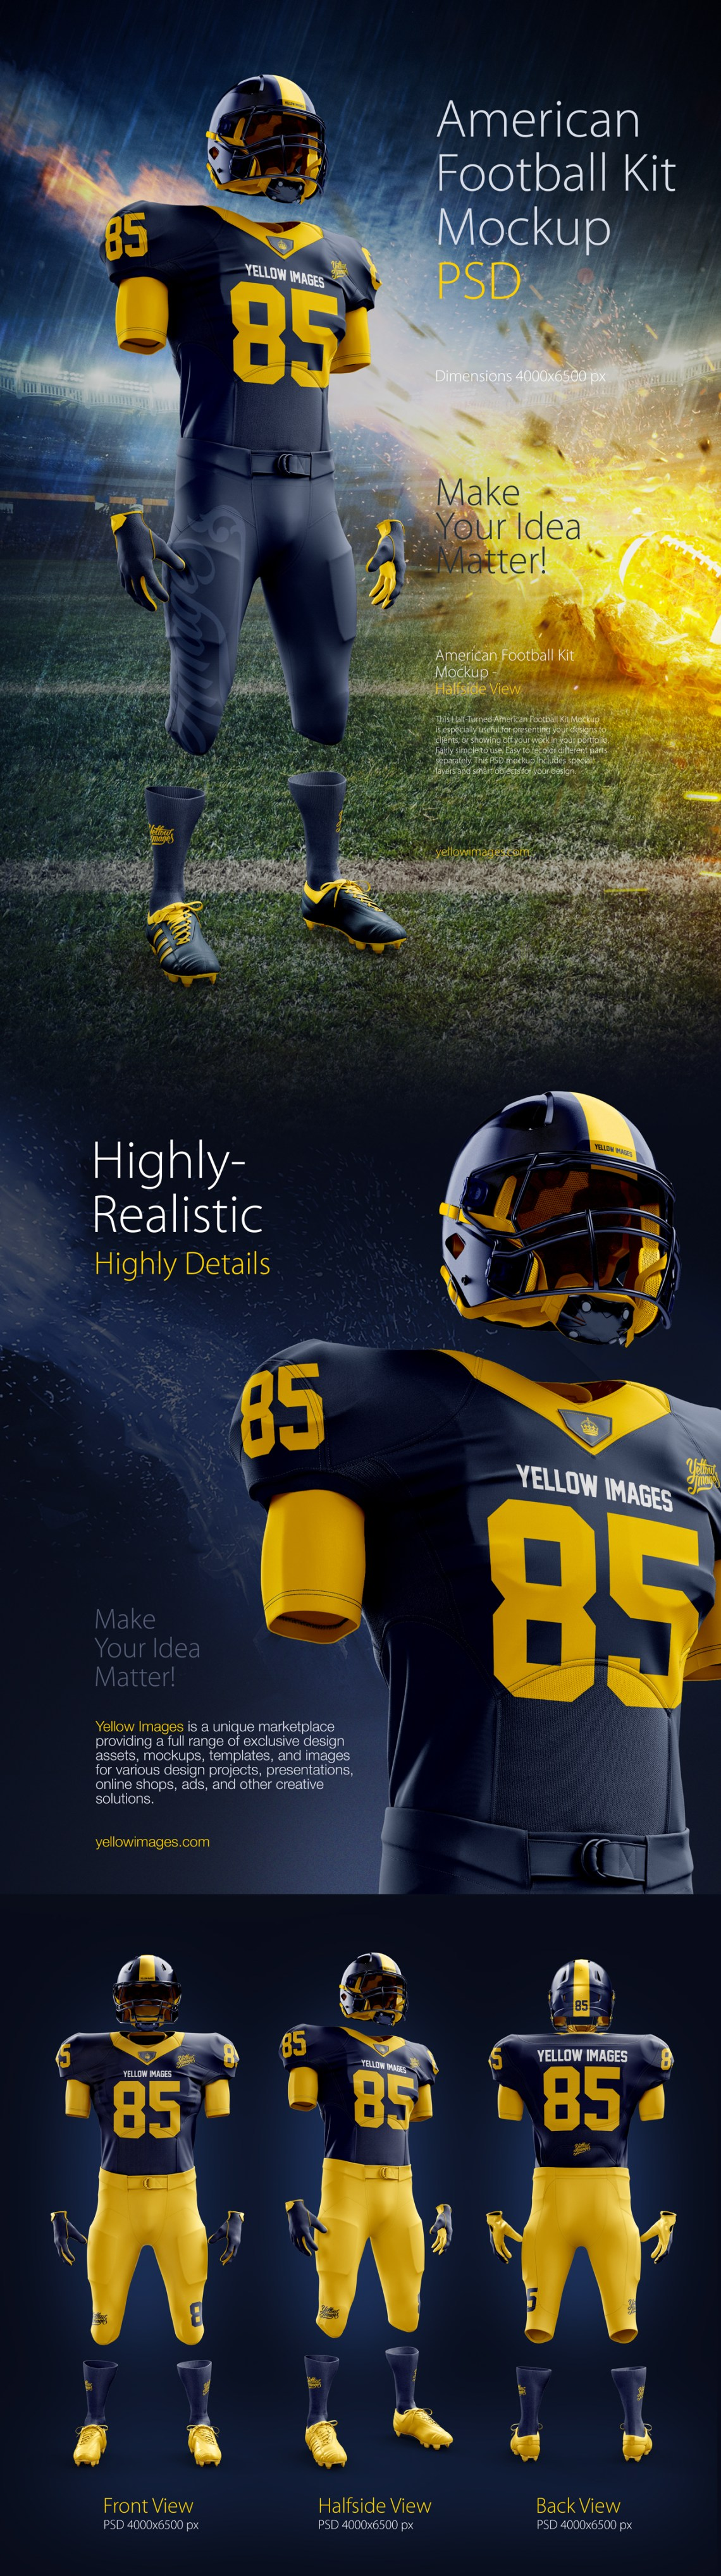 Download American Football Kit Mockup PSD in Apparel Mockups on ...